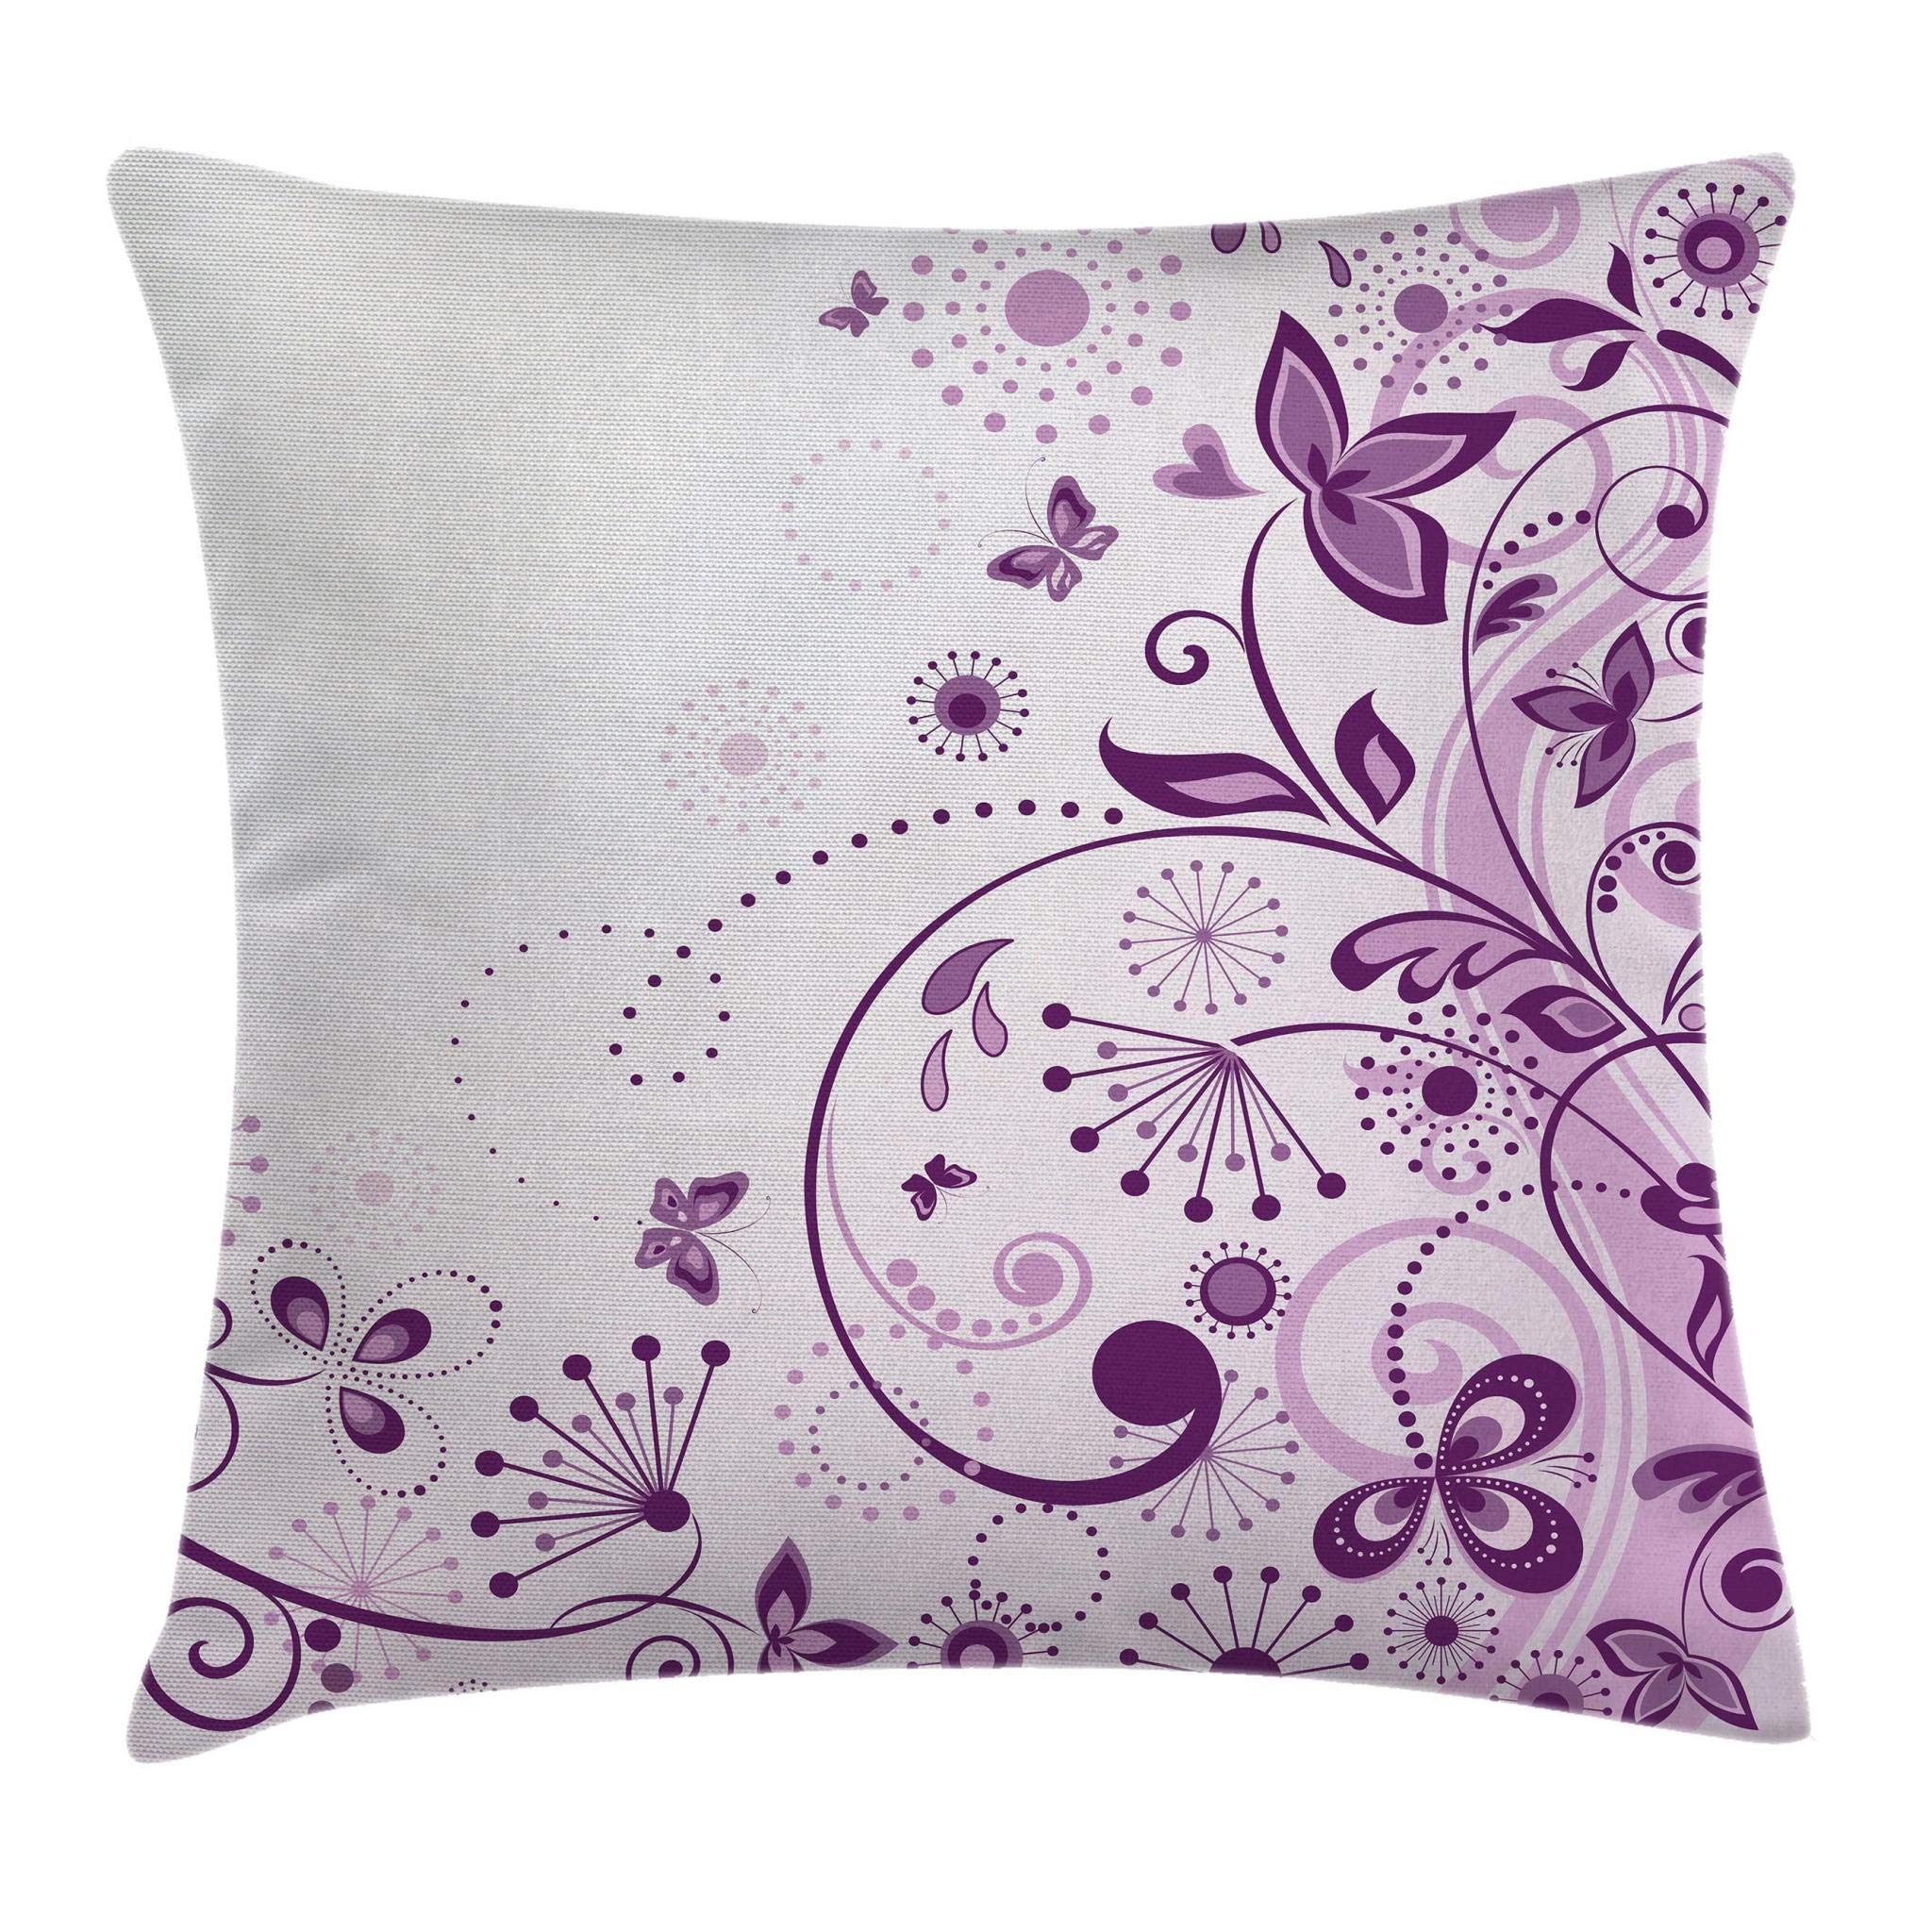 Ambesonne Mauve Decor Throw Pillow Cushion Cover by, Curved Flower Leaf Ornate Blooming Branches Romantic Love Figures Artsy Print, Decorative Square Accent Pillow Case, 18 X 18 Inches, Violet Lilac